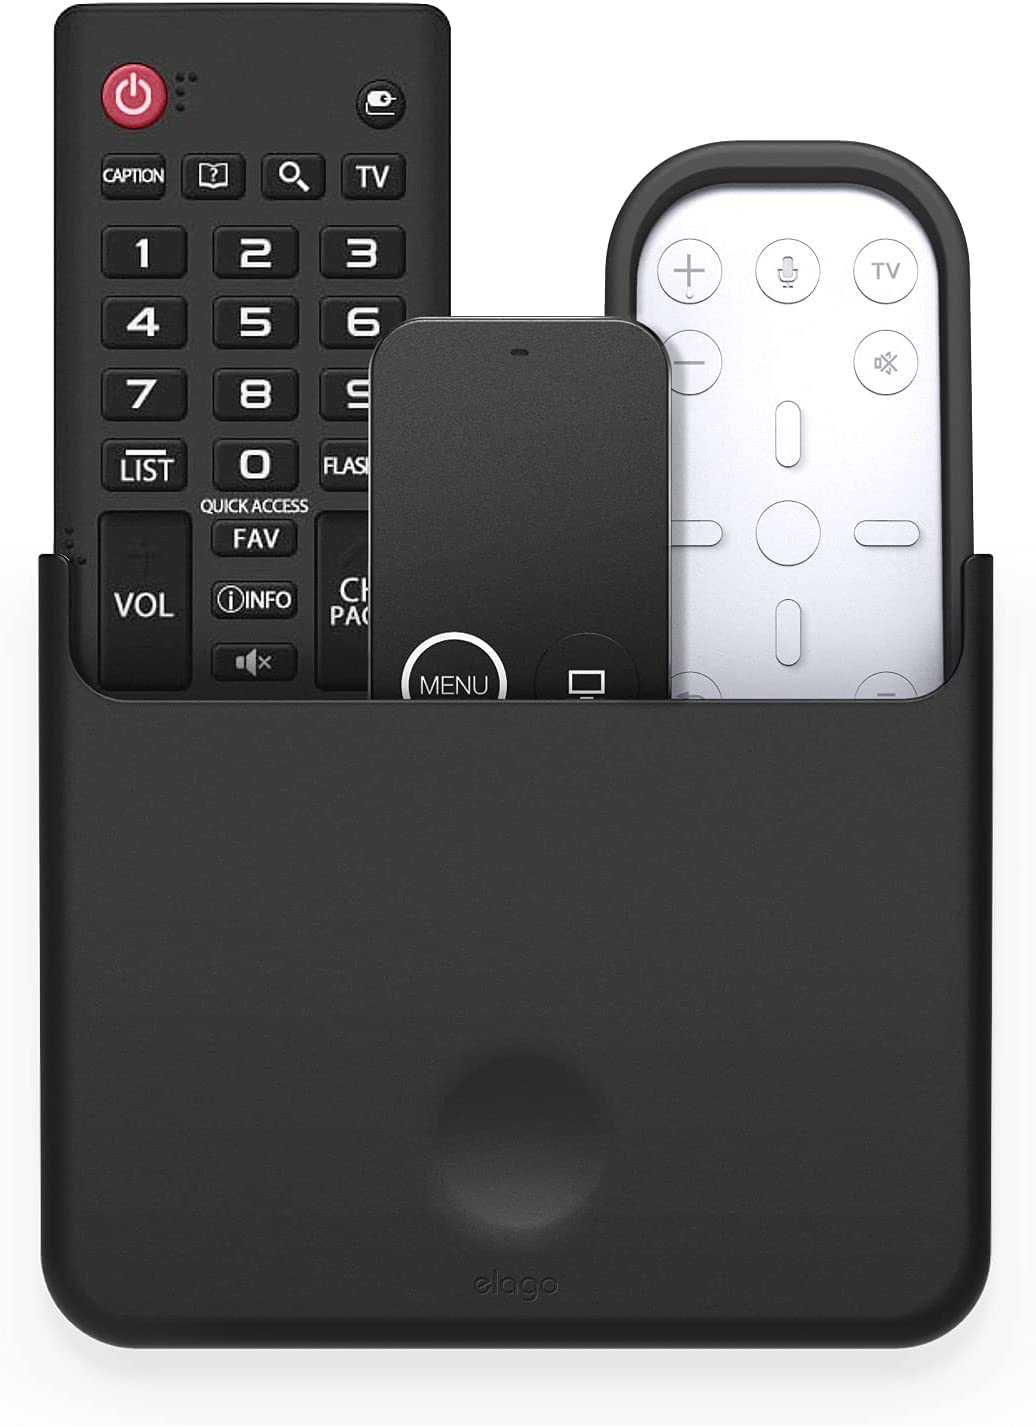 elago Universal Remote Holder Mount Compatible with Apple TV Remote Control and All Other Remote Controls [ Large ] - Gel Pad Included, Detailed Design